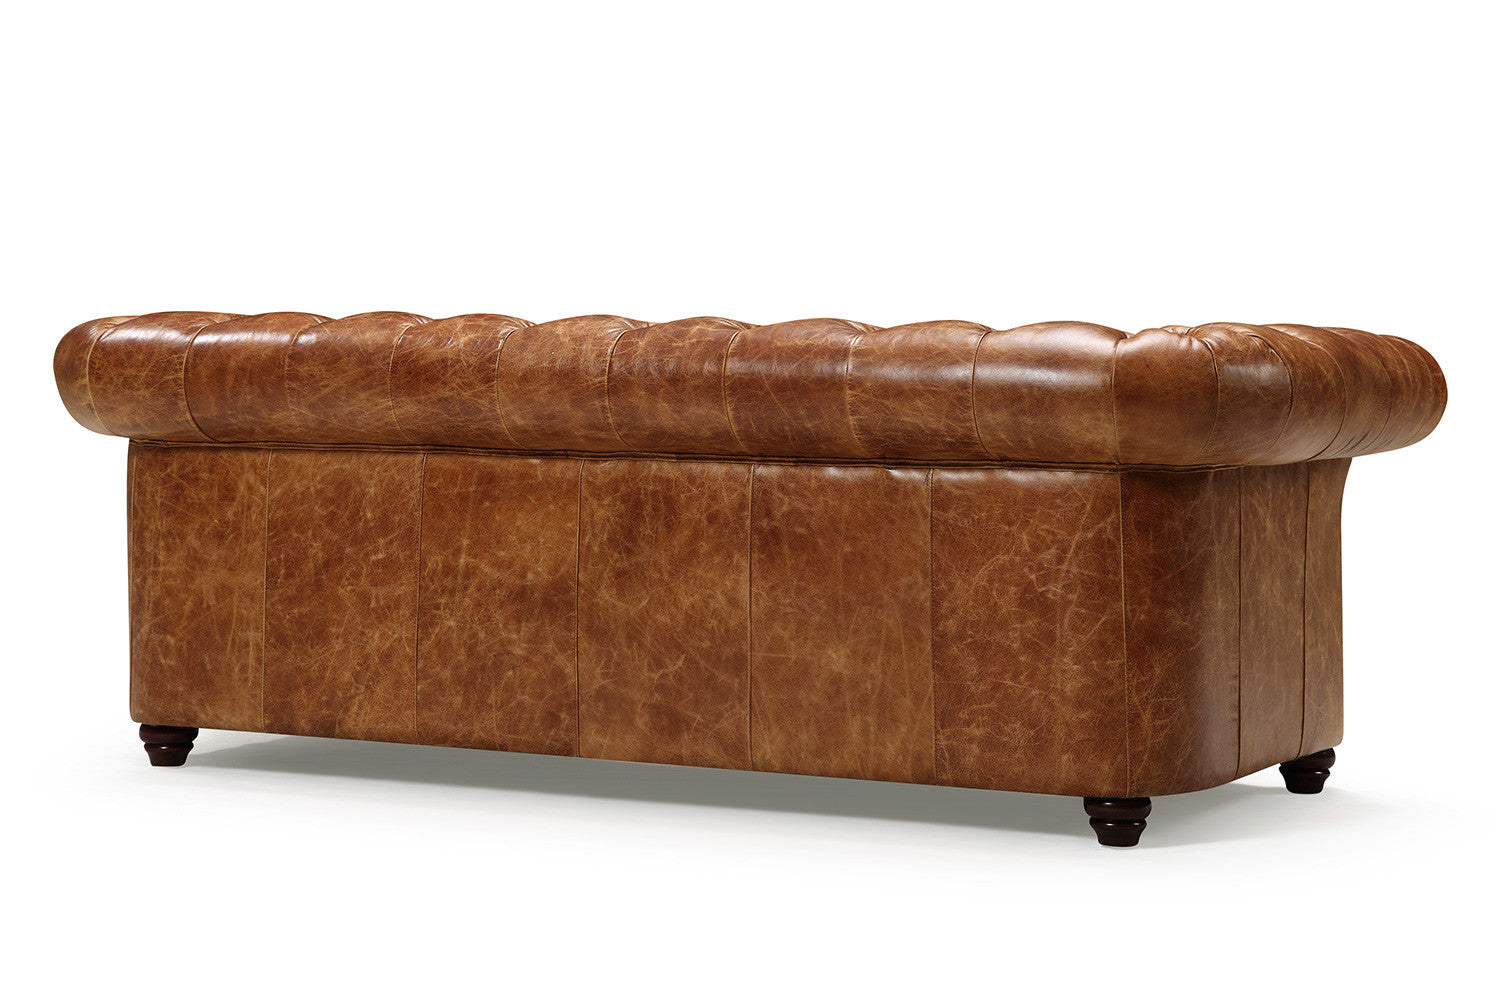 Super The Westminster Chesterfield Leather Sofa Rose And Moore Gmtry Best Dining Table And Chair Ideas Images Gmtryco